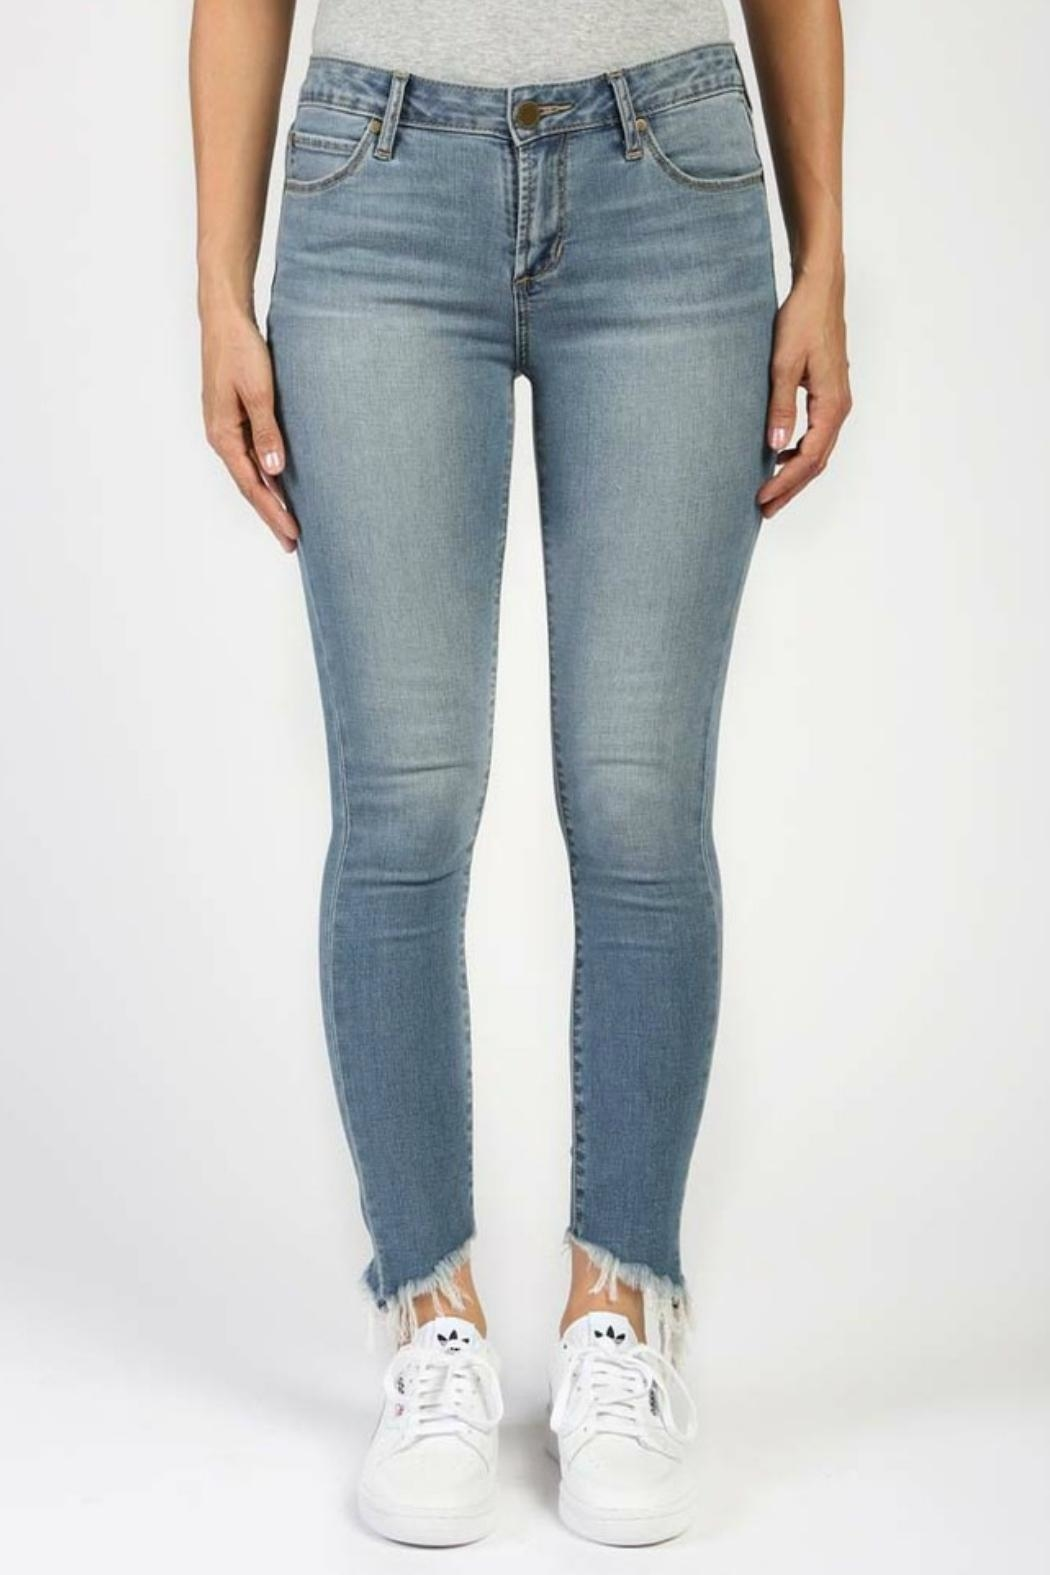 Articles of Society Montego Suzy Skinny-Jeans - Main Image